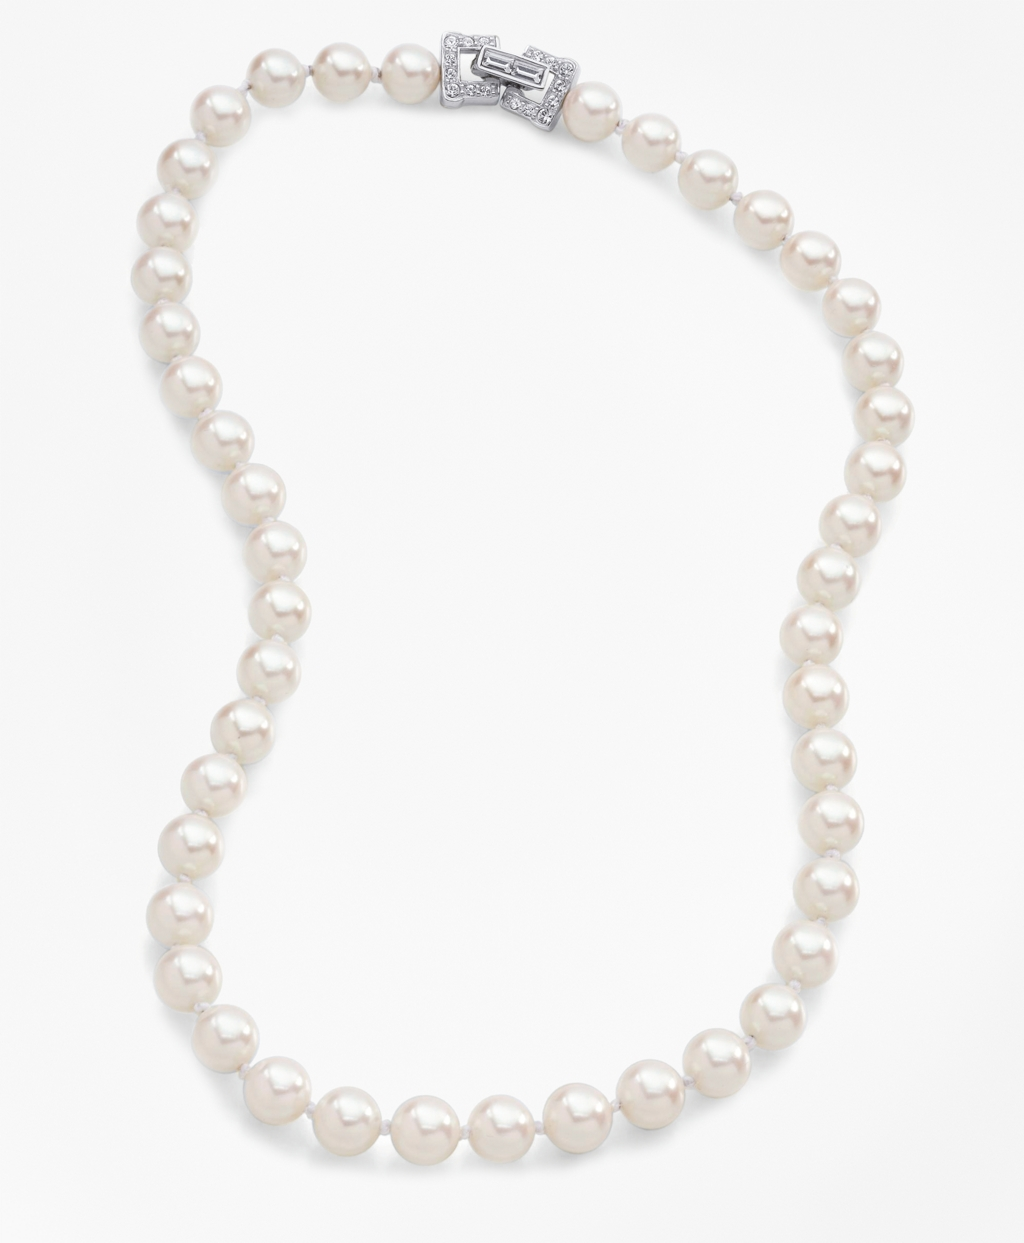 1920s Jewelry Styles History Brooks Brothers Womens Glass Pearl Necklace $298.00 AT vintagedancer.com